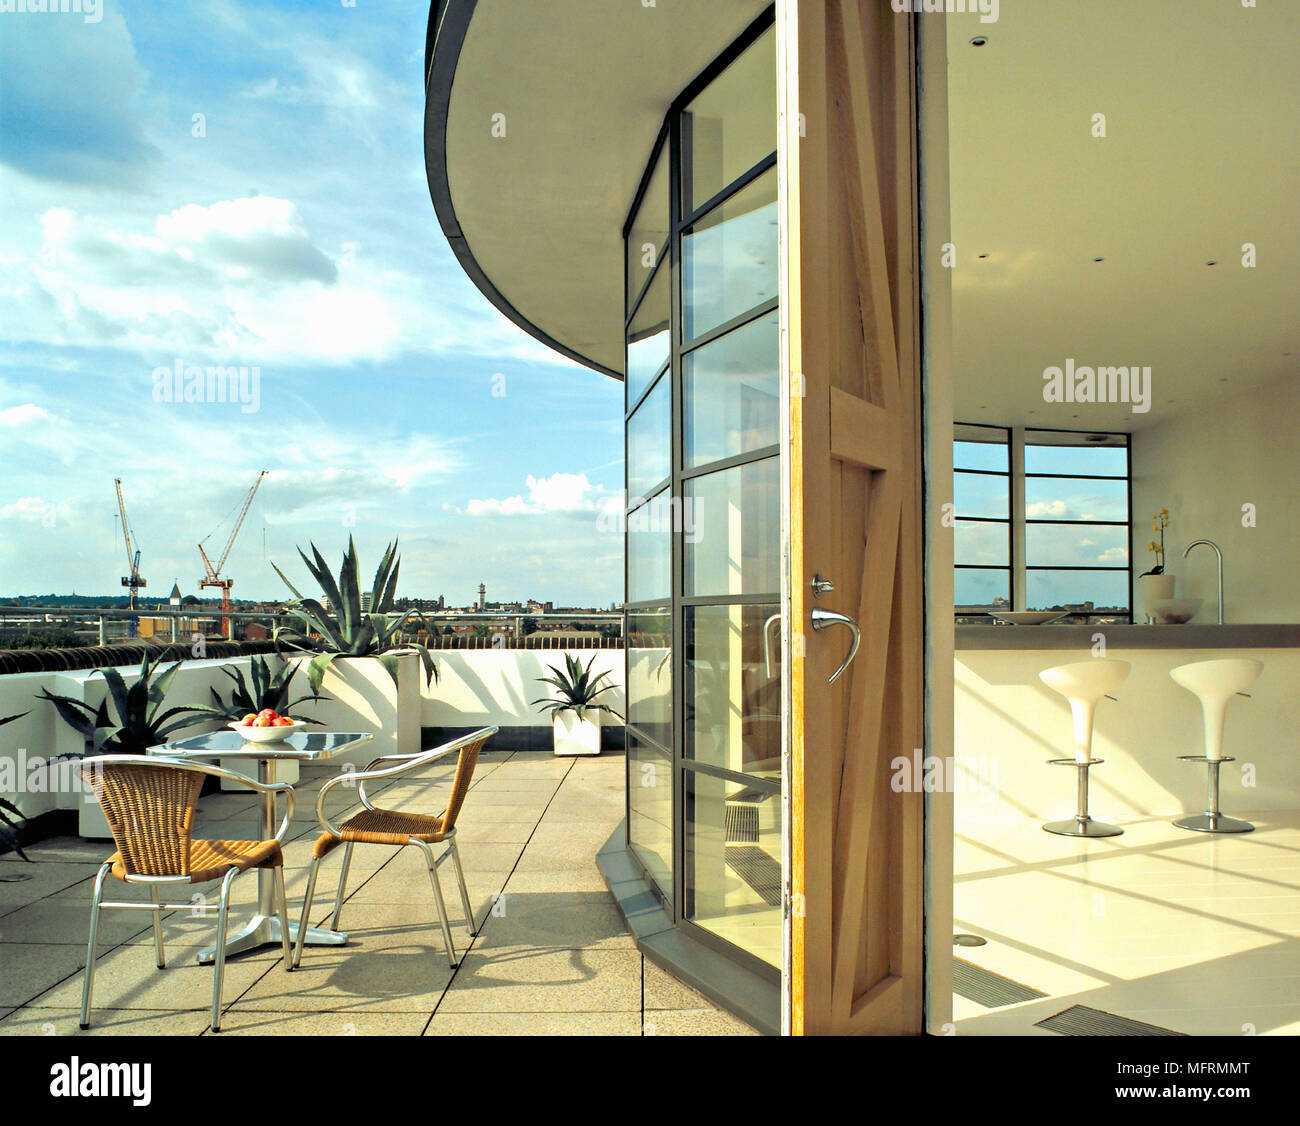 A Modern Roof Terrace Balcony Paved Patio Area Table And Chairs Curving Glass  Wall Leading Off From Kitchen Area